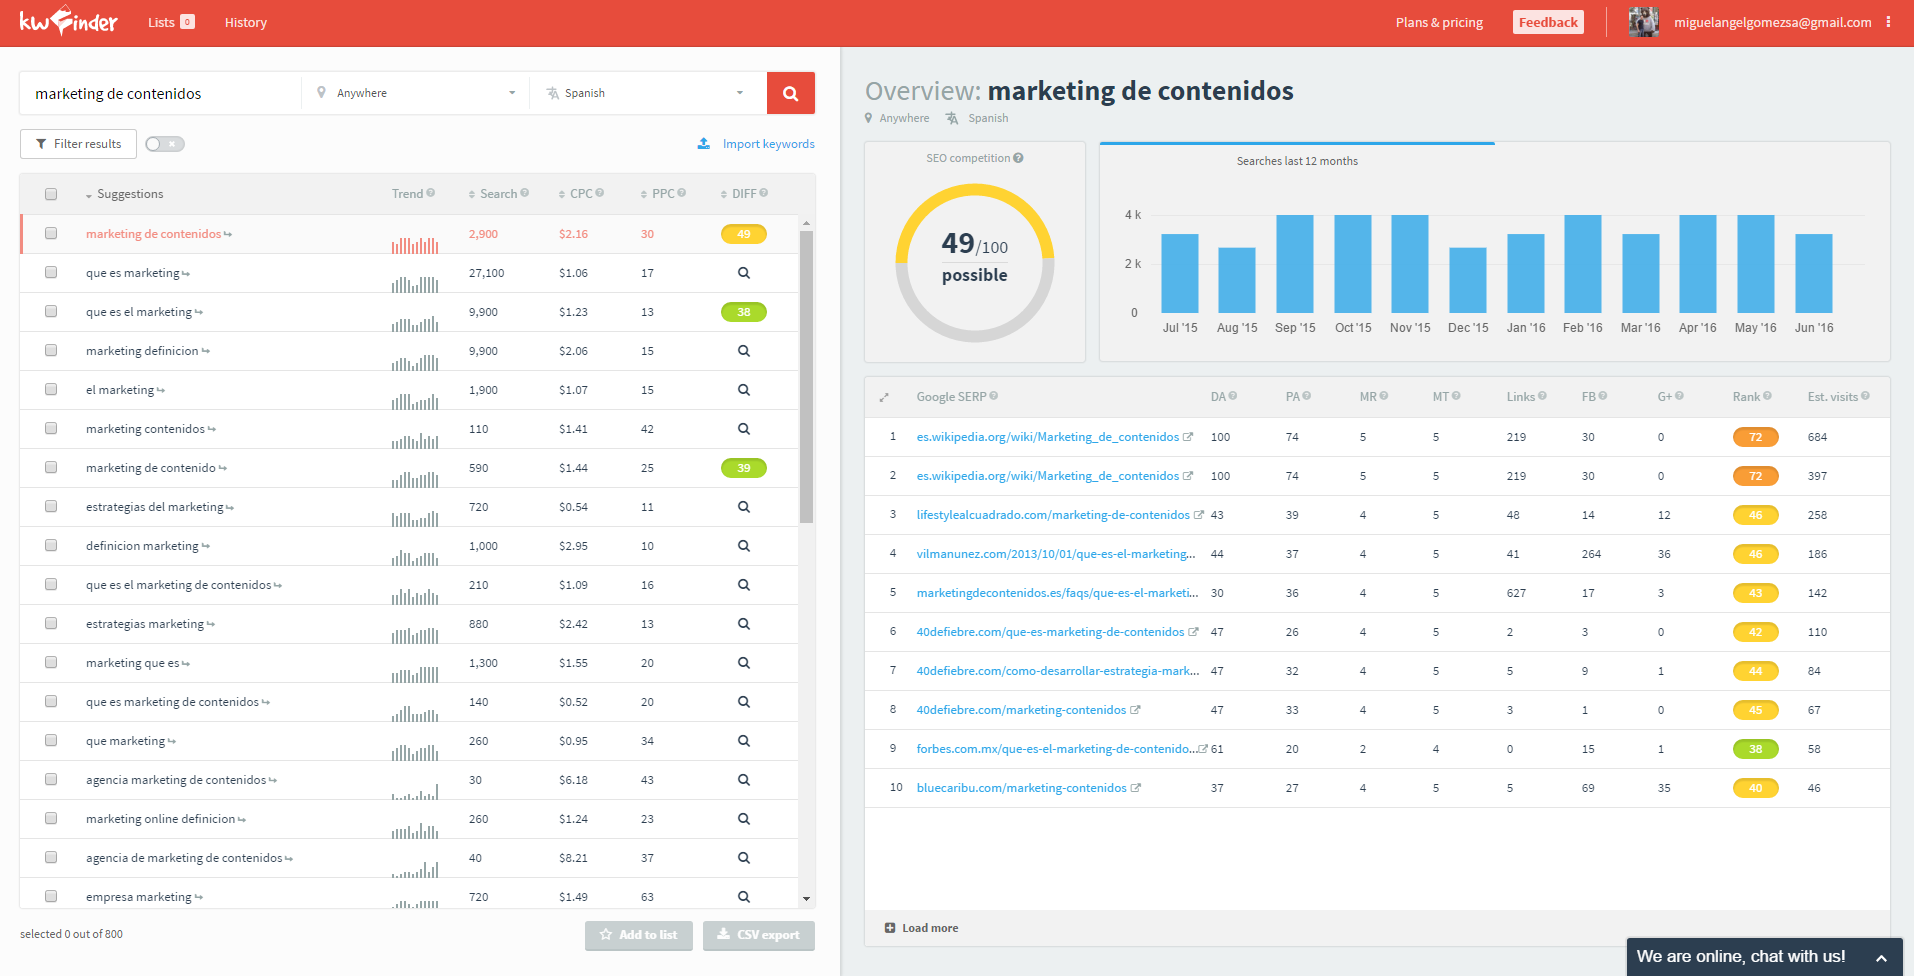 marketing/marketing de contenidos-kwfinder